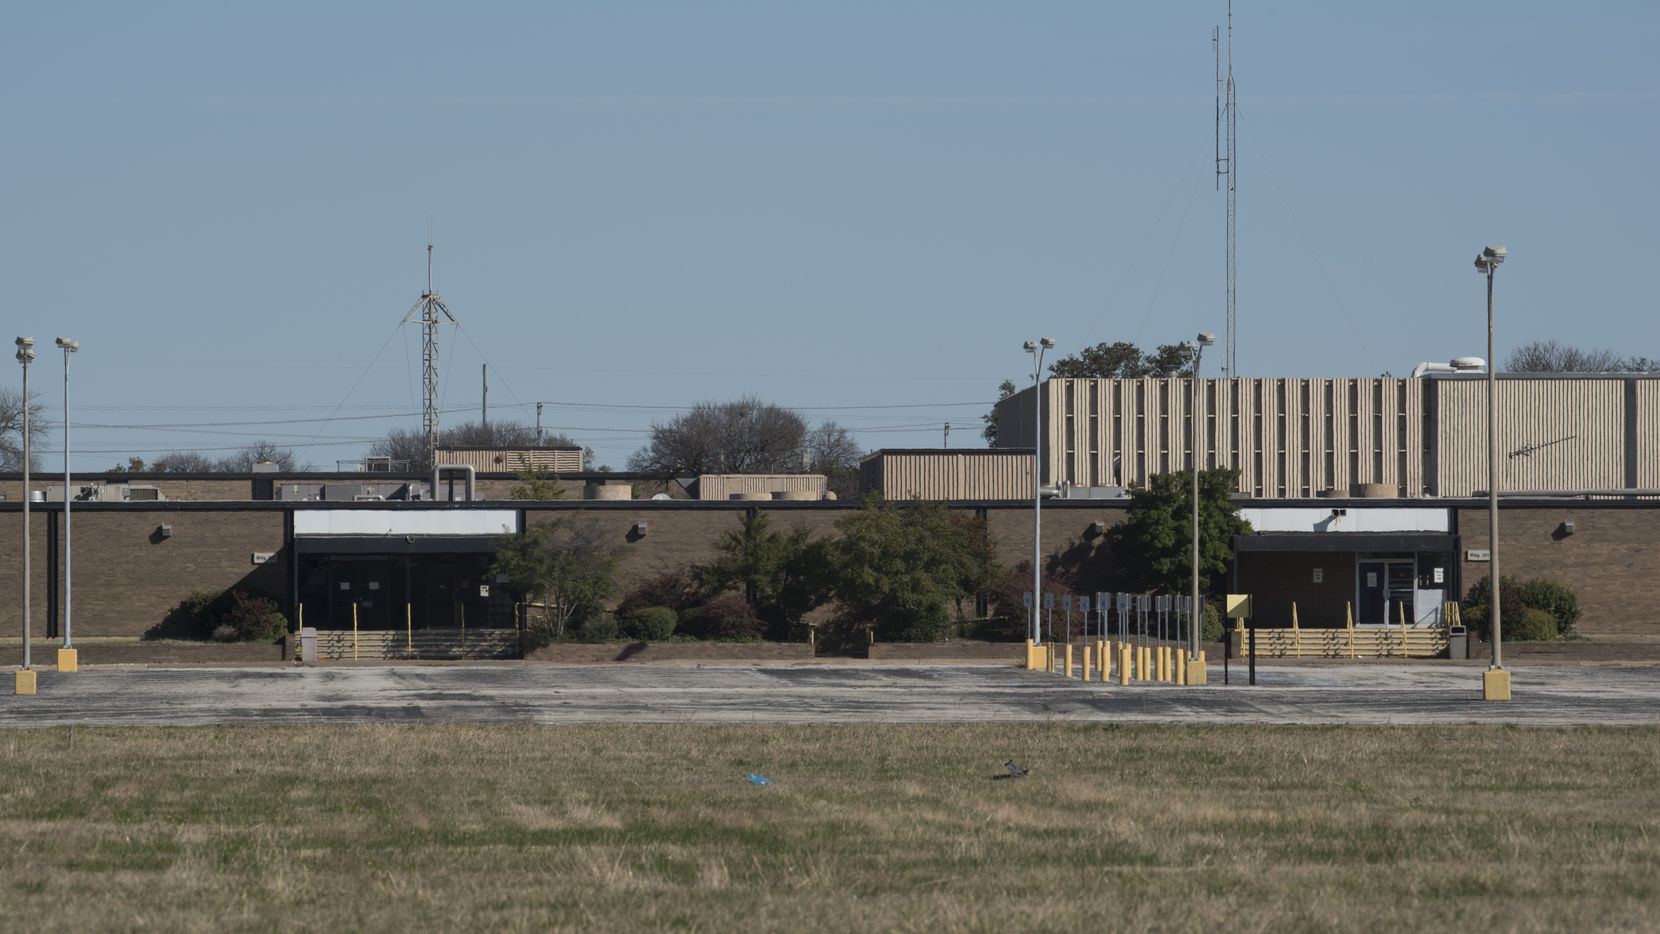 Nutribiotech USA will occupy part of the old Raytheon campus in Garland.